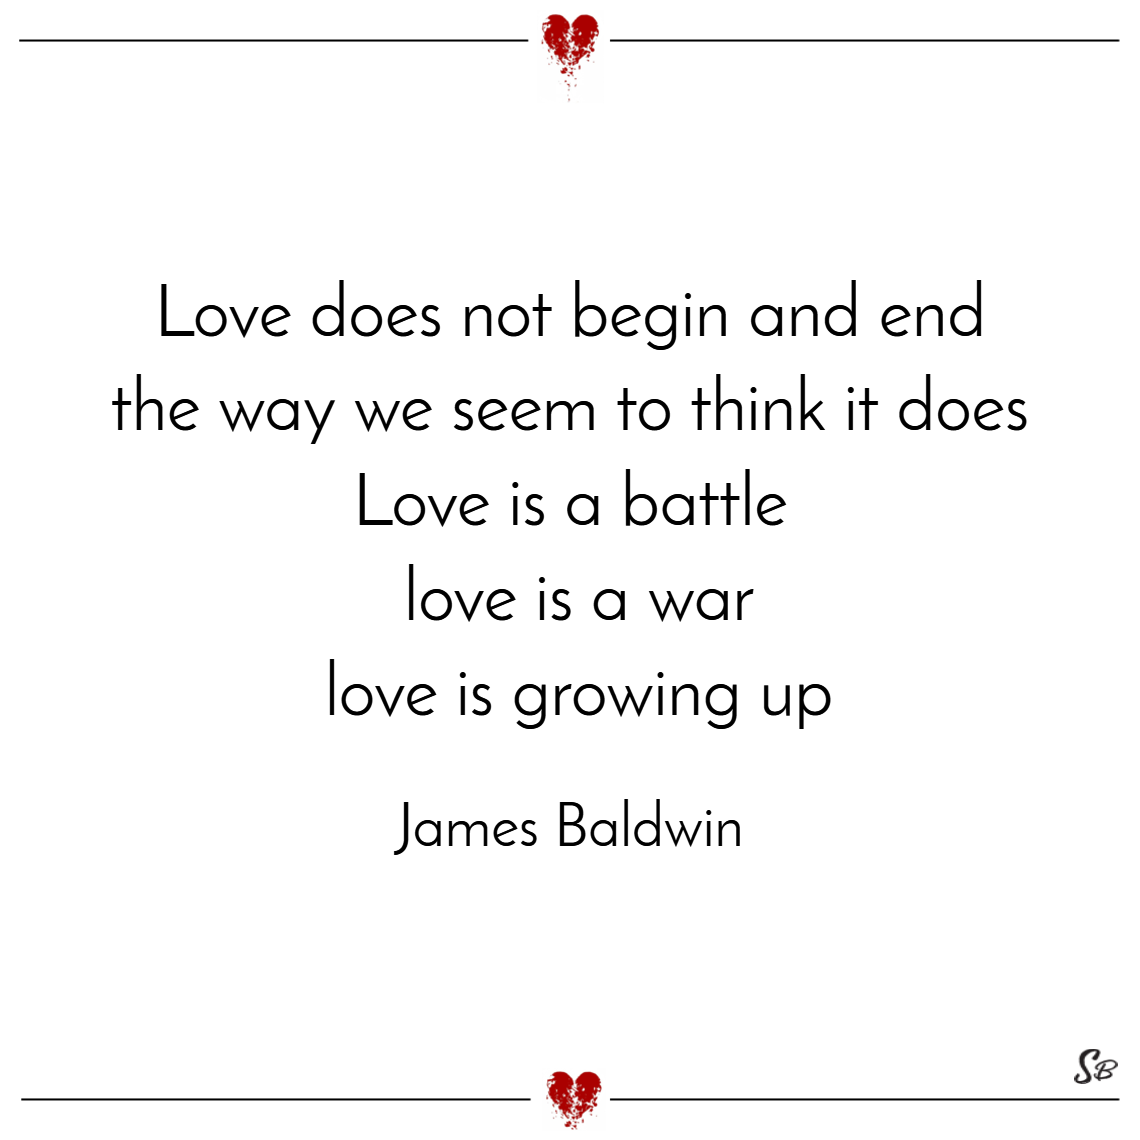 Love does not begin and end the way we seem to think it does. love is a battle, love is a war; love is a growing up. – james baldwin